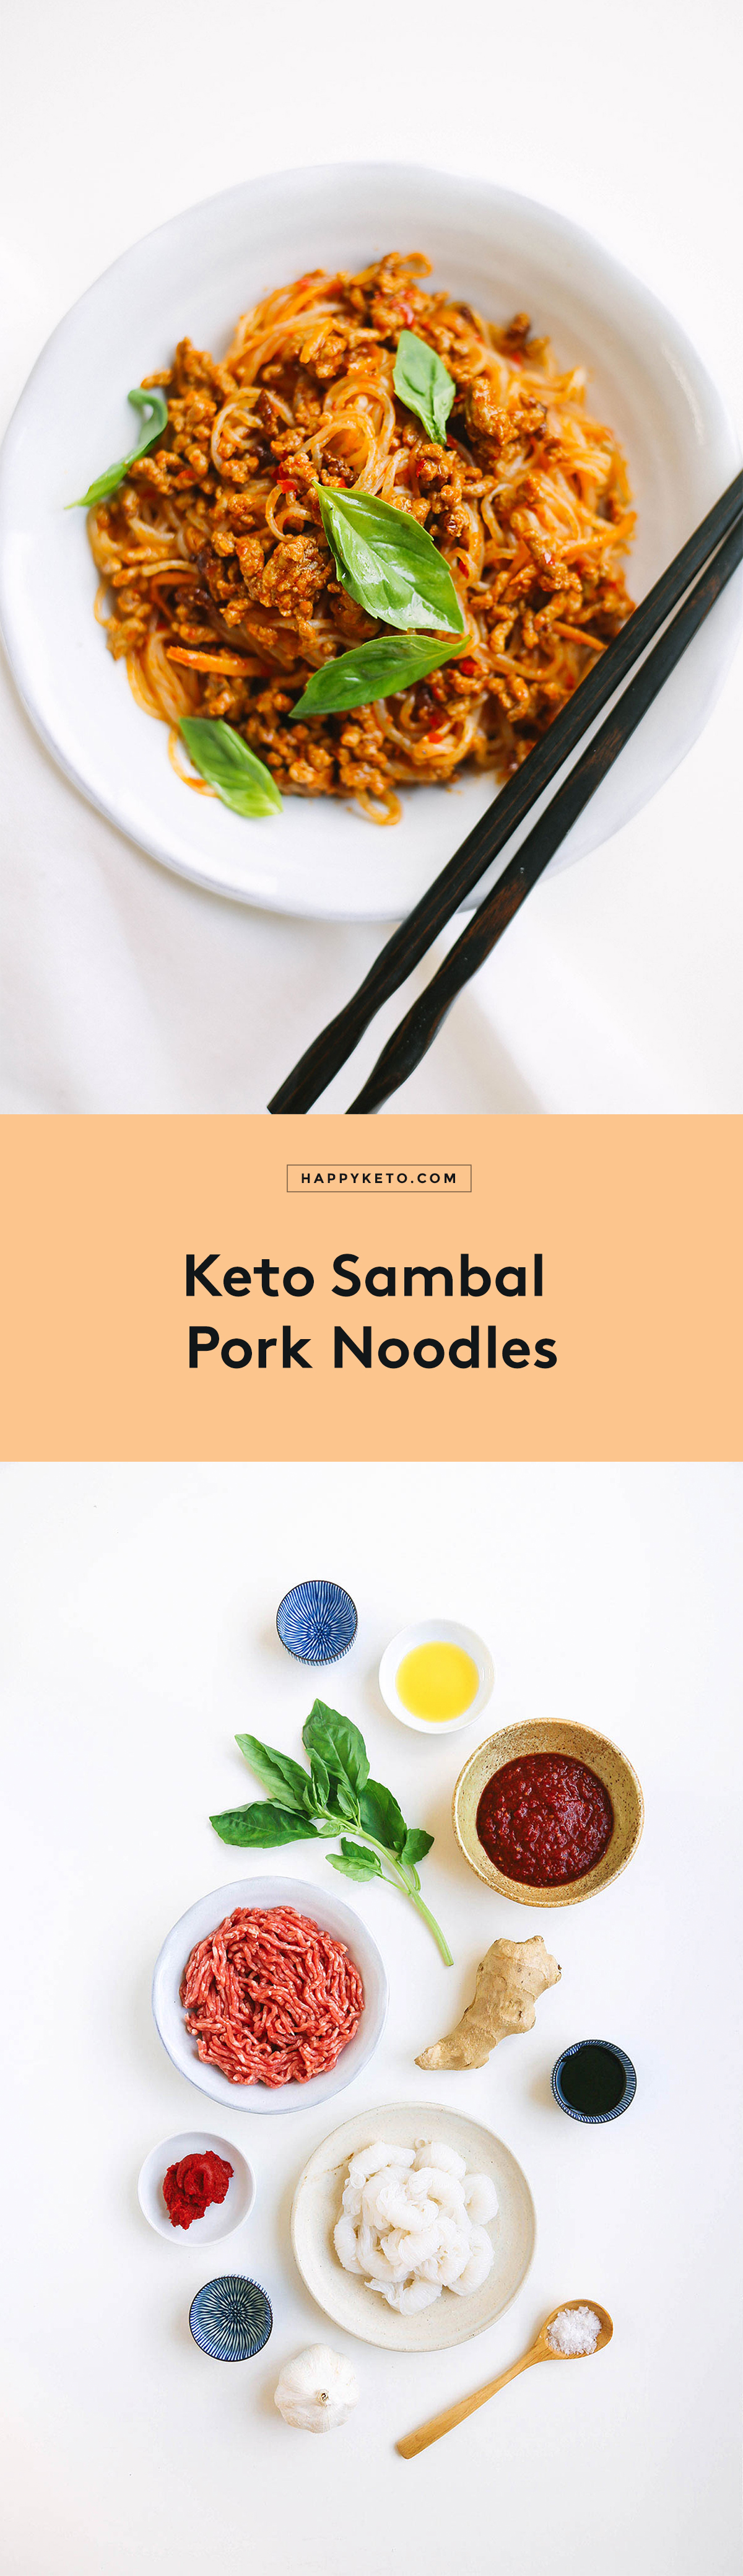 Keto Sambal Pork Noodles for ketogenic and low carb. Easy recipe with sambal oelek and shirataki noodles. keto, keto sambal, keto pork, keto noodles, keto pork noodles, keto spicy noodles, keto noodle recipes, keto shirataki noodles, keto pork noodles low carb, keto recipes, ketogenic diet, keto easy recipes, keto easy, keto meals, keto quick meals, keto recipes easy, low carb, low carb recipes, low carb noodles, low carb sambal, low carb pork, lchf, lchf recipes